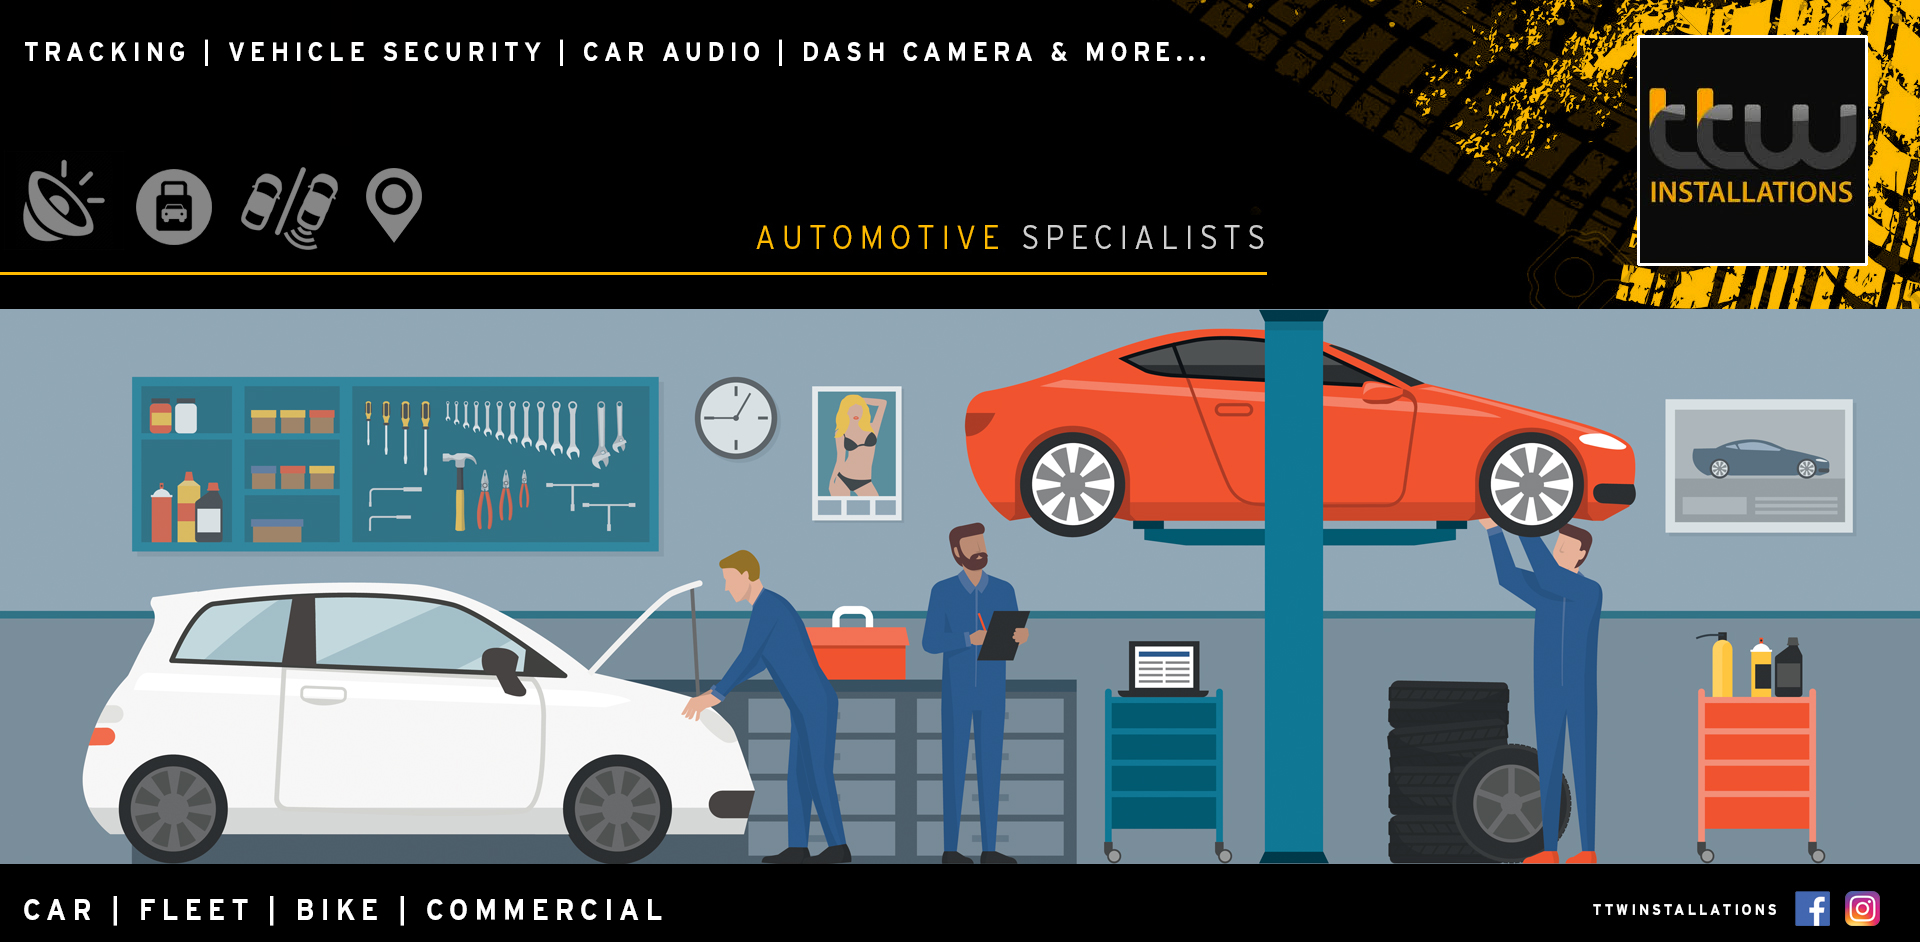 TTW Installations - Automotive Installation & Security Experts - Autowatch Ghost - Vehicle Tracking - Van Security - Vehicle Car Audio and much More - Nottingham - Derby  - UK